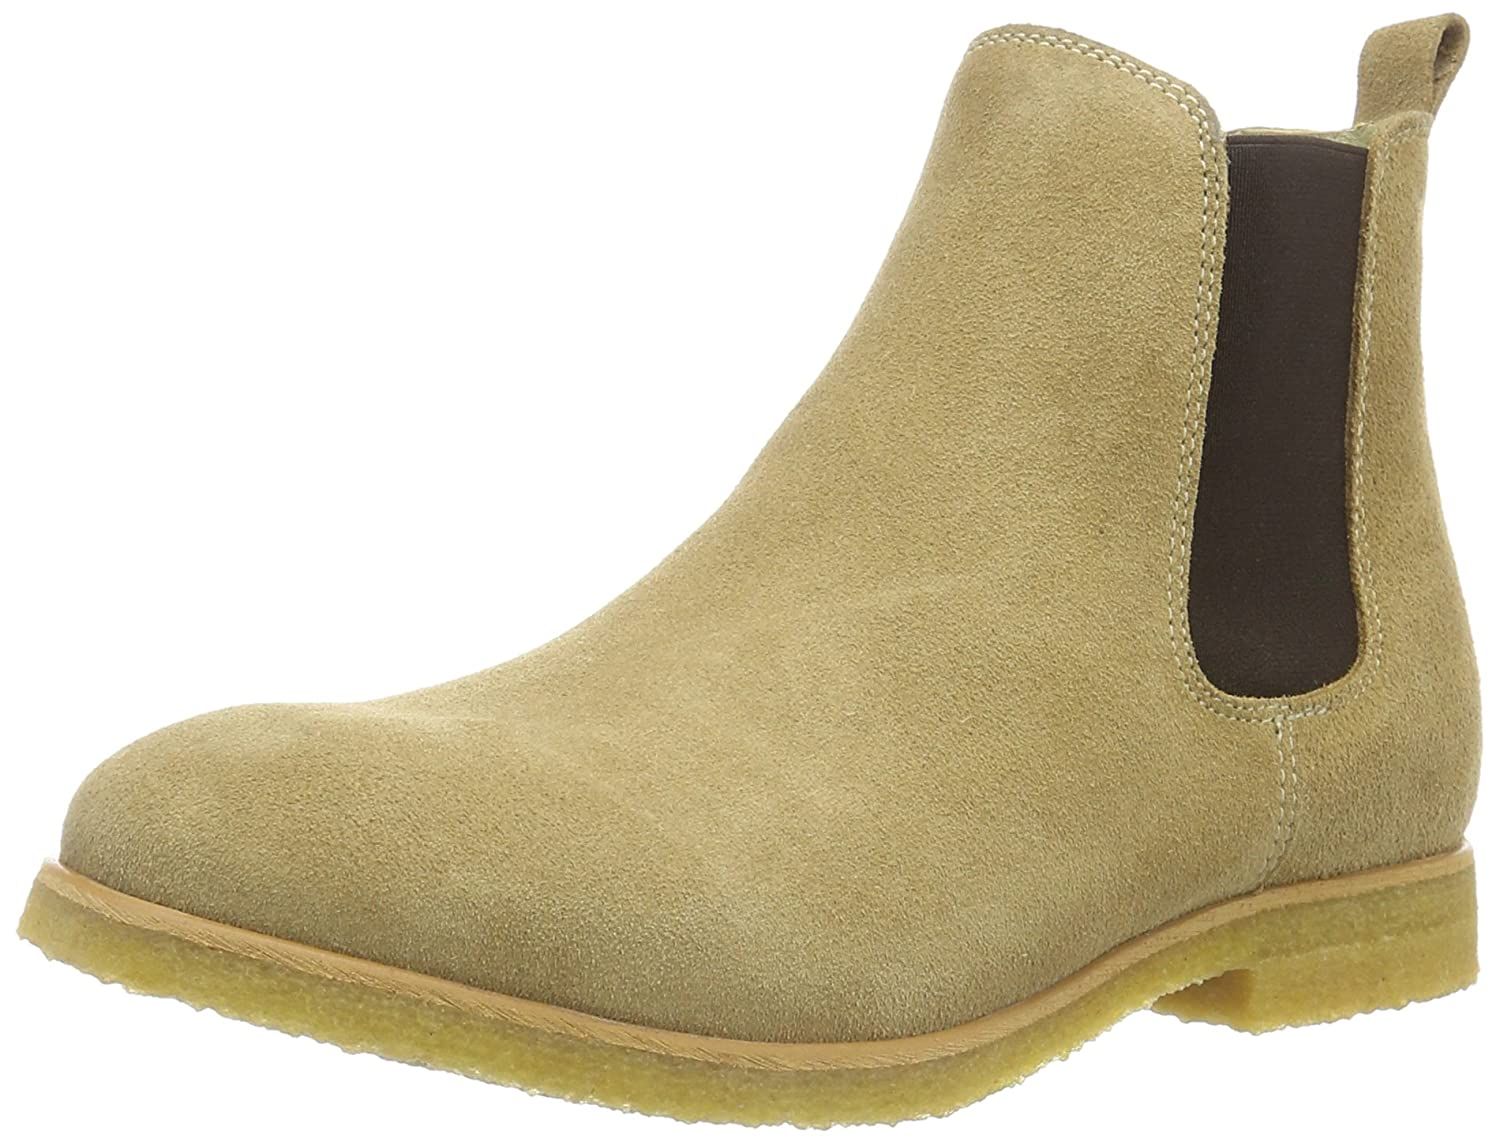 Shoe The Bear Friday S, Botas Chelsea para Mujer Beige (Sand)